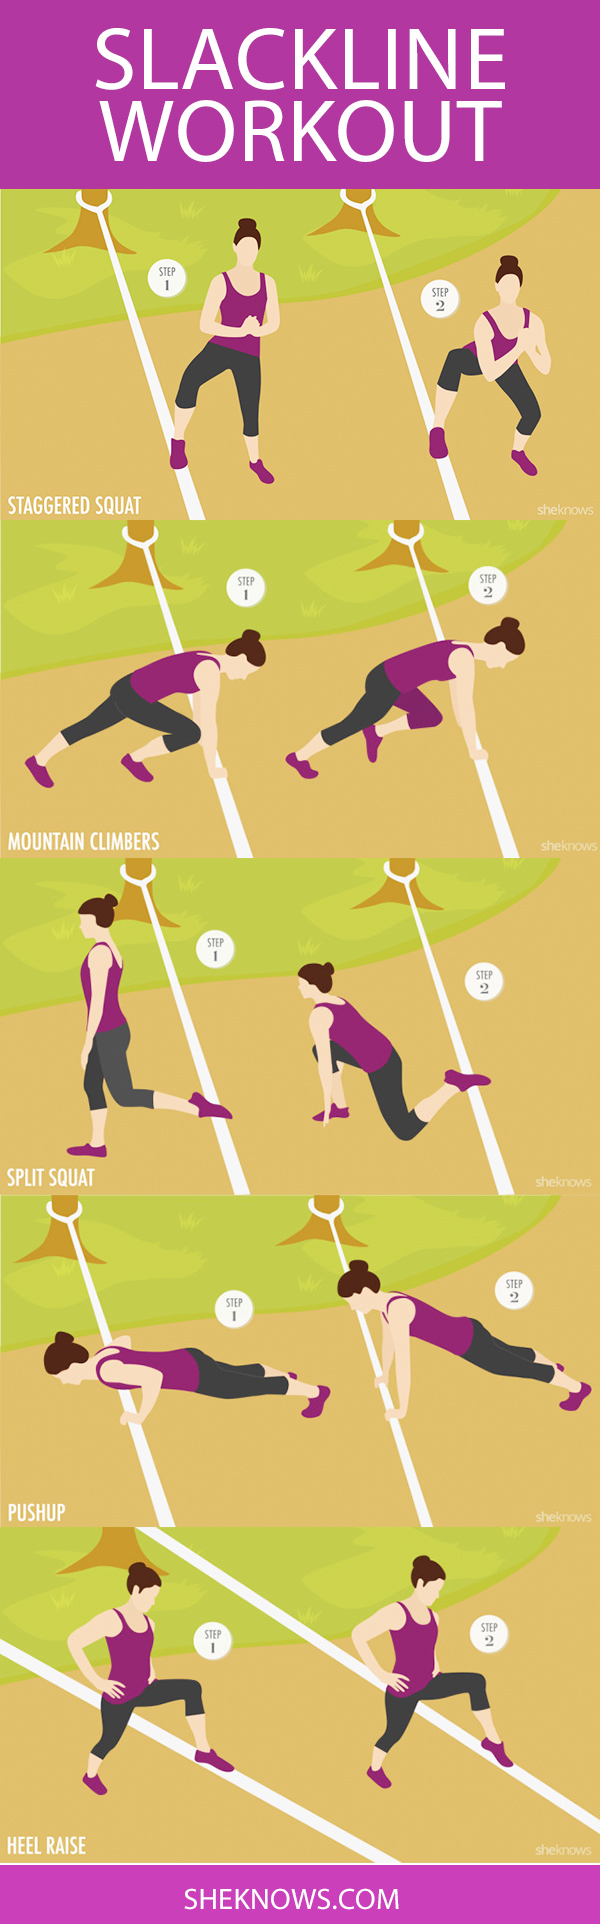 Pin it! Slackline exercises